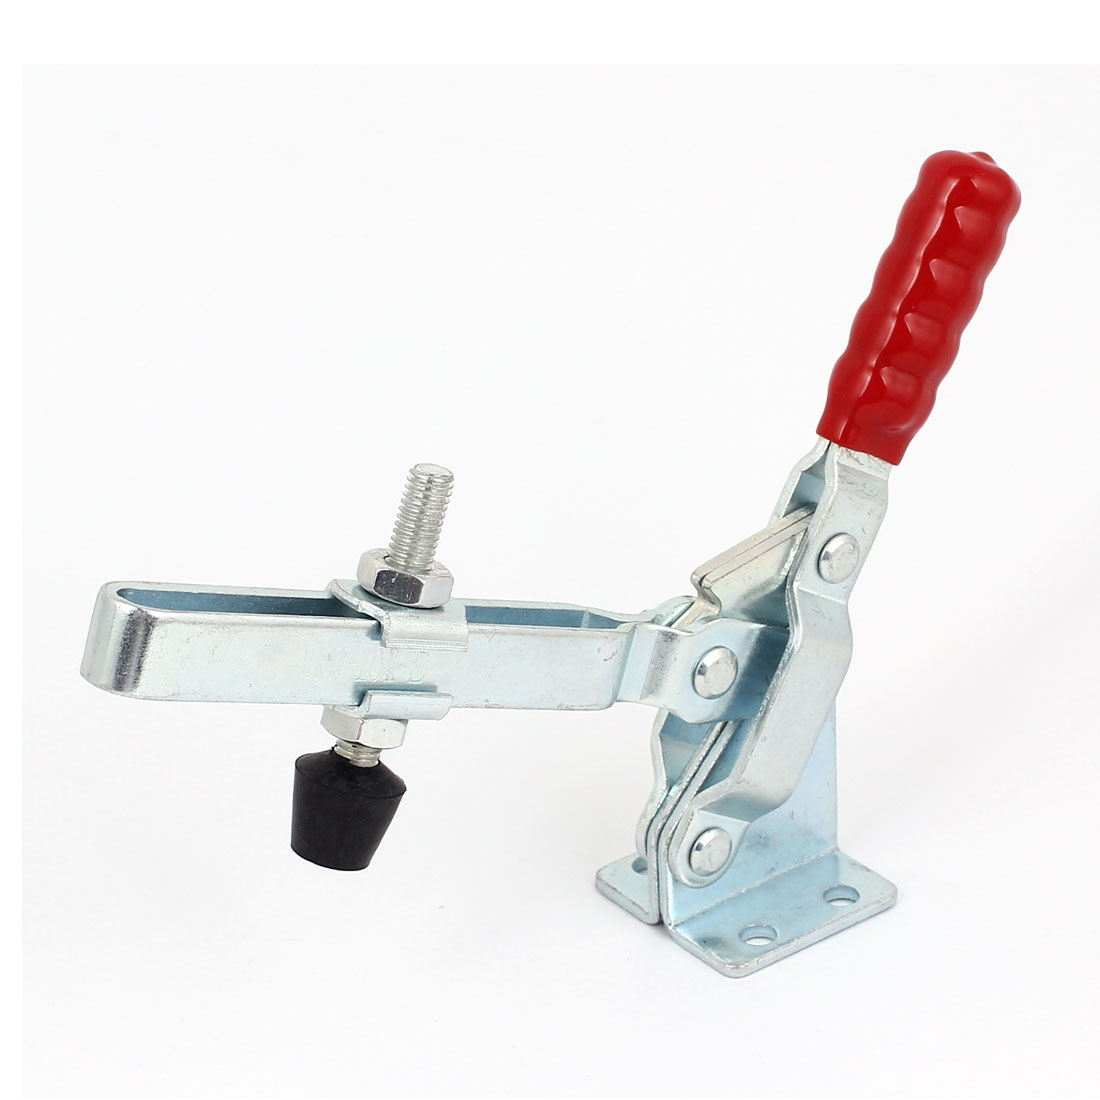 180Kg 397Lbs Holding Capacity Quick Hold Vertical Type Toggle Clamp 101E